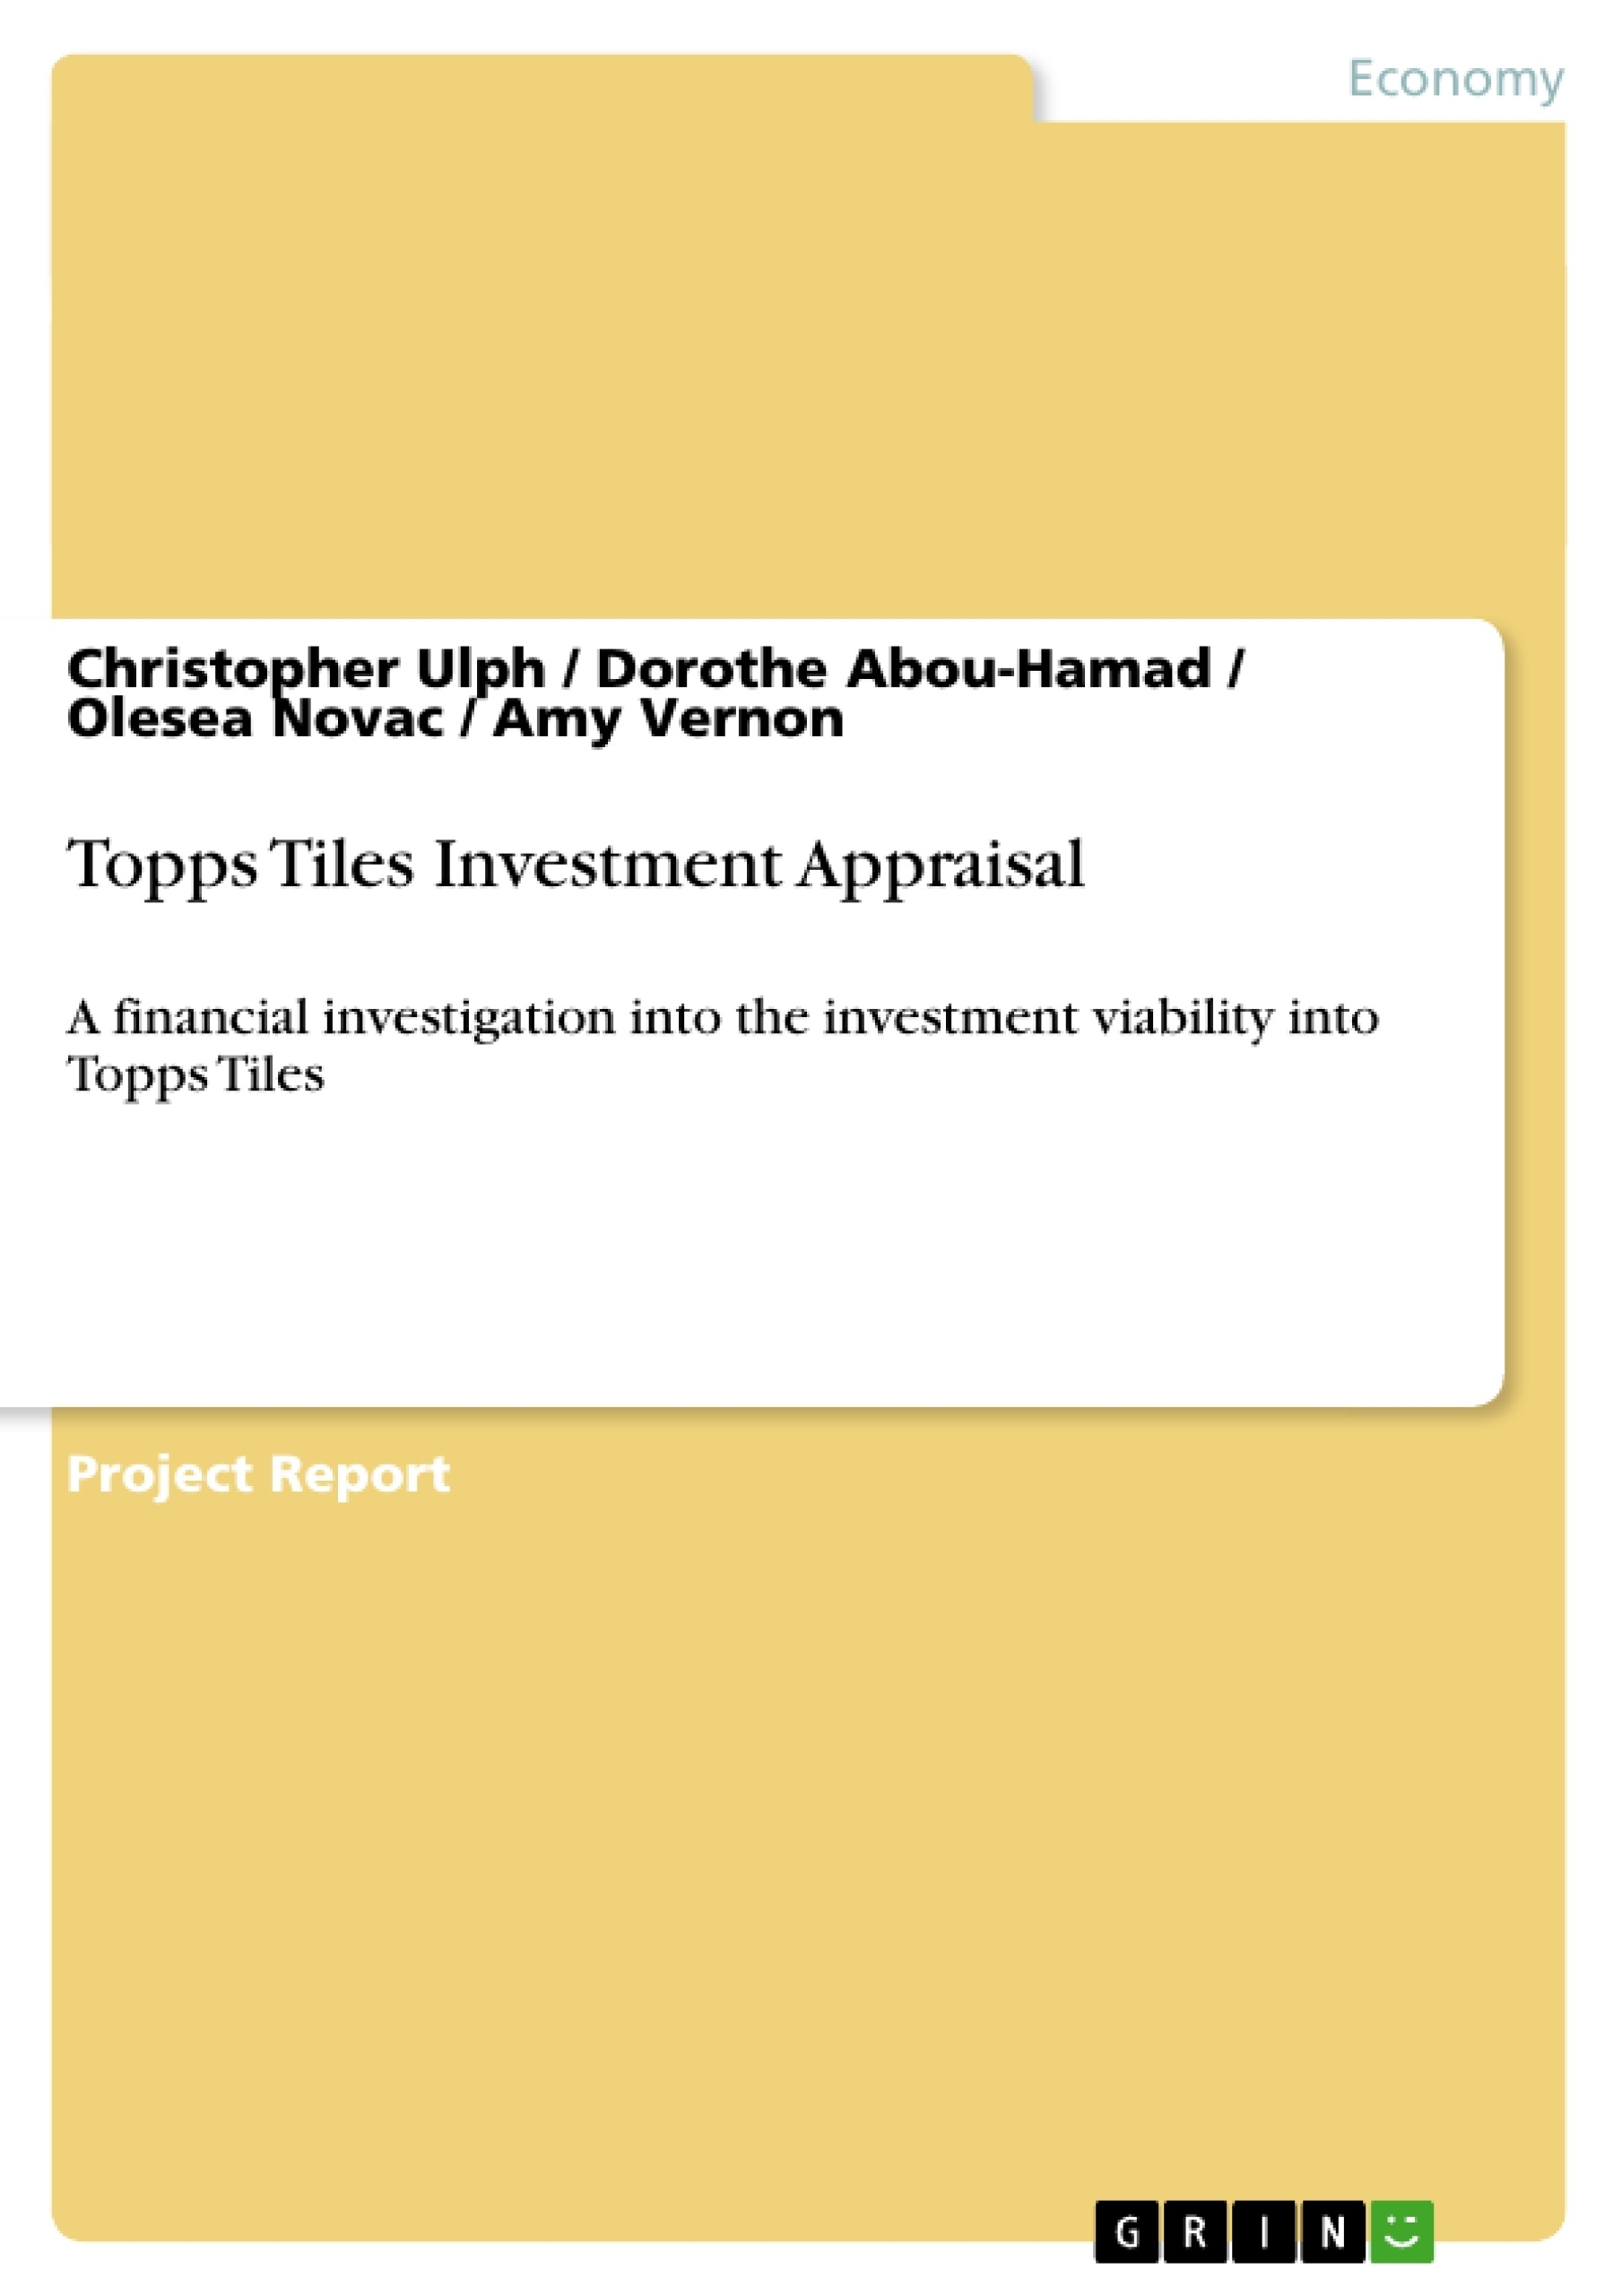 thesis on investment appraisal Break-even analysis of mining project  break-even analysis of mining project a thesis submitted in partial fulfillment of the  investment decision.